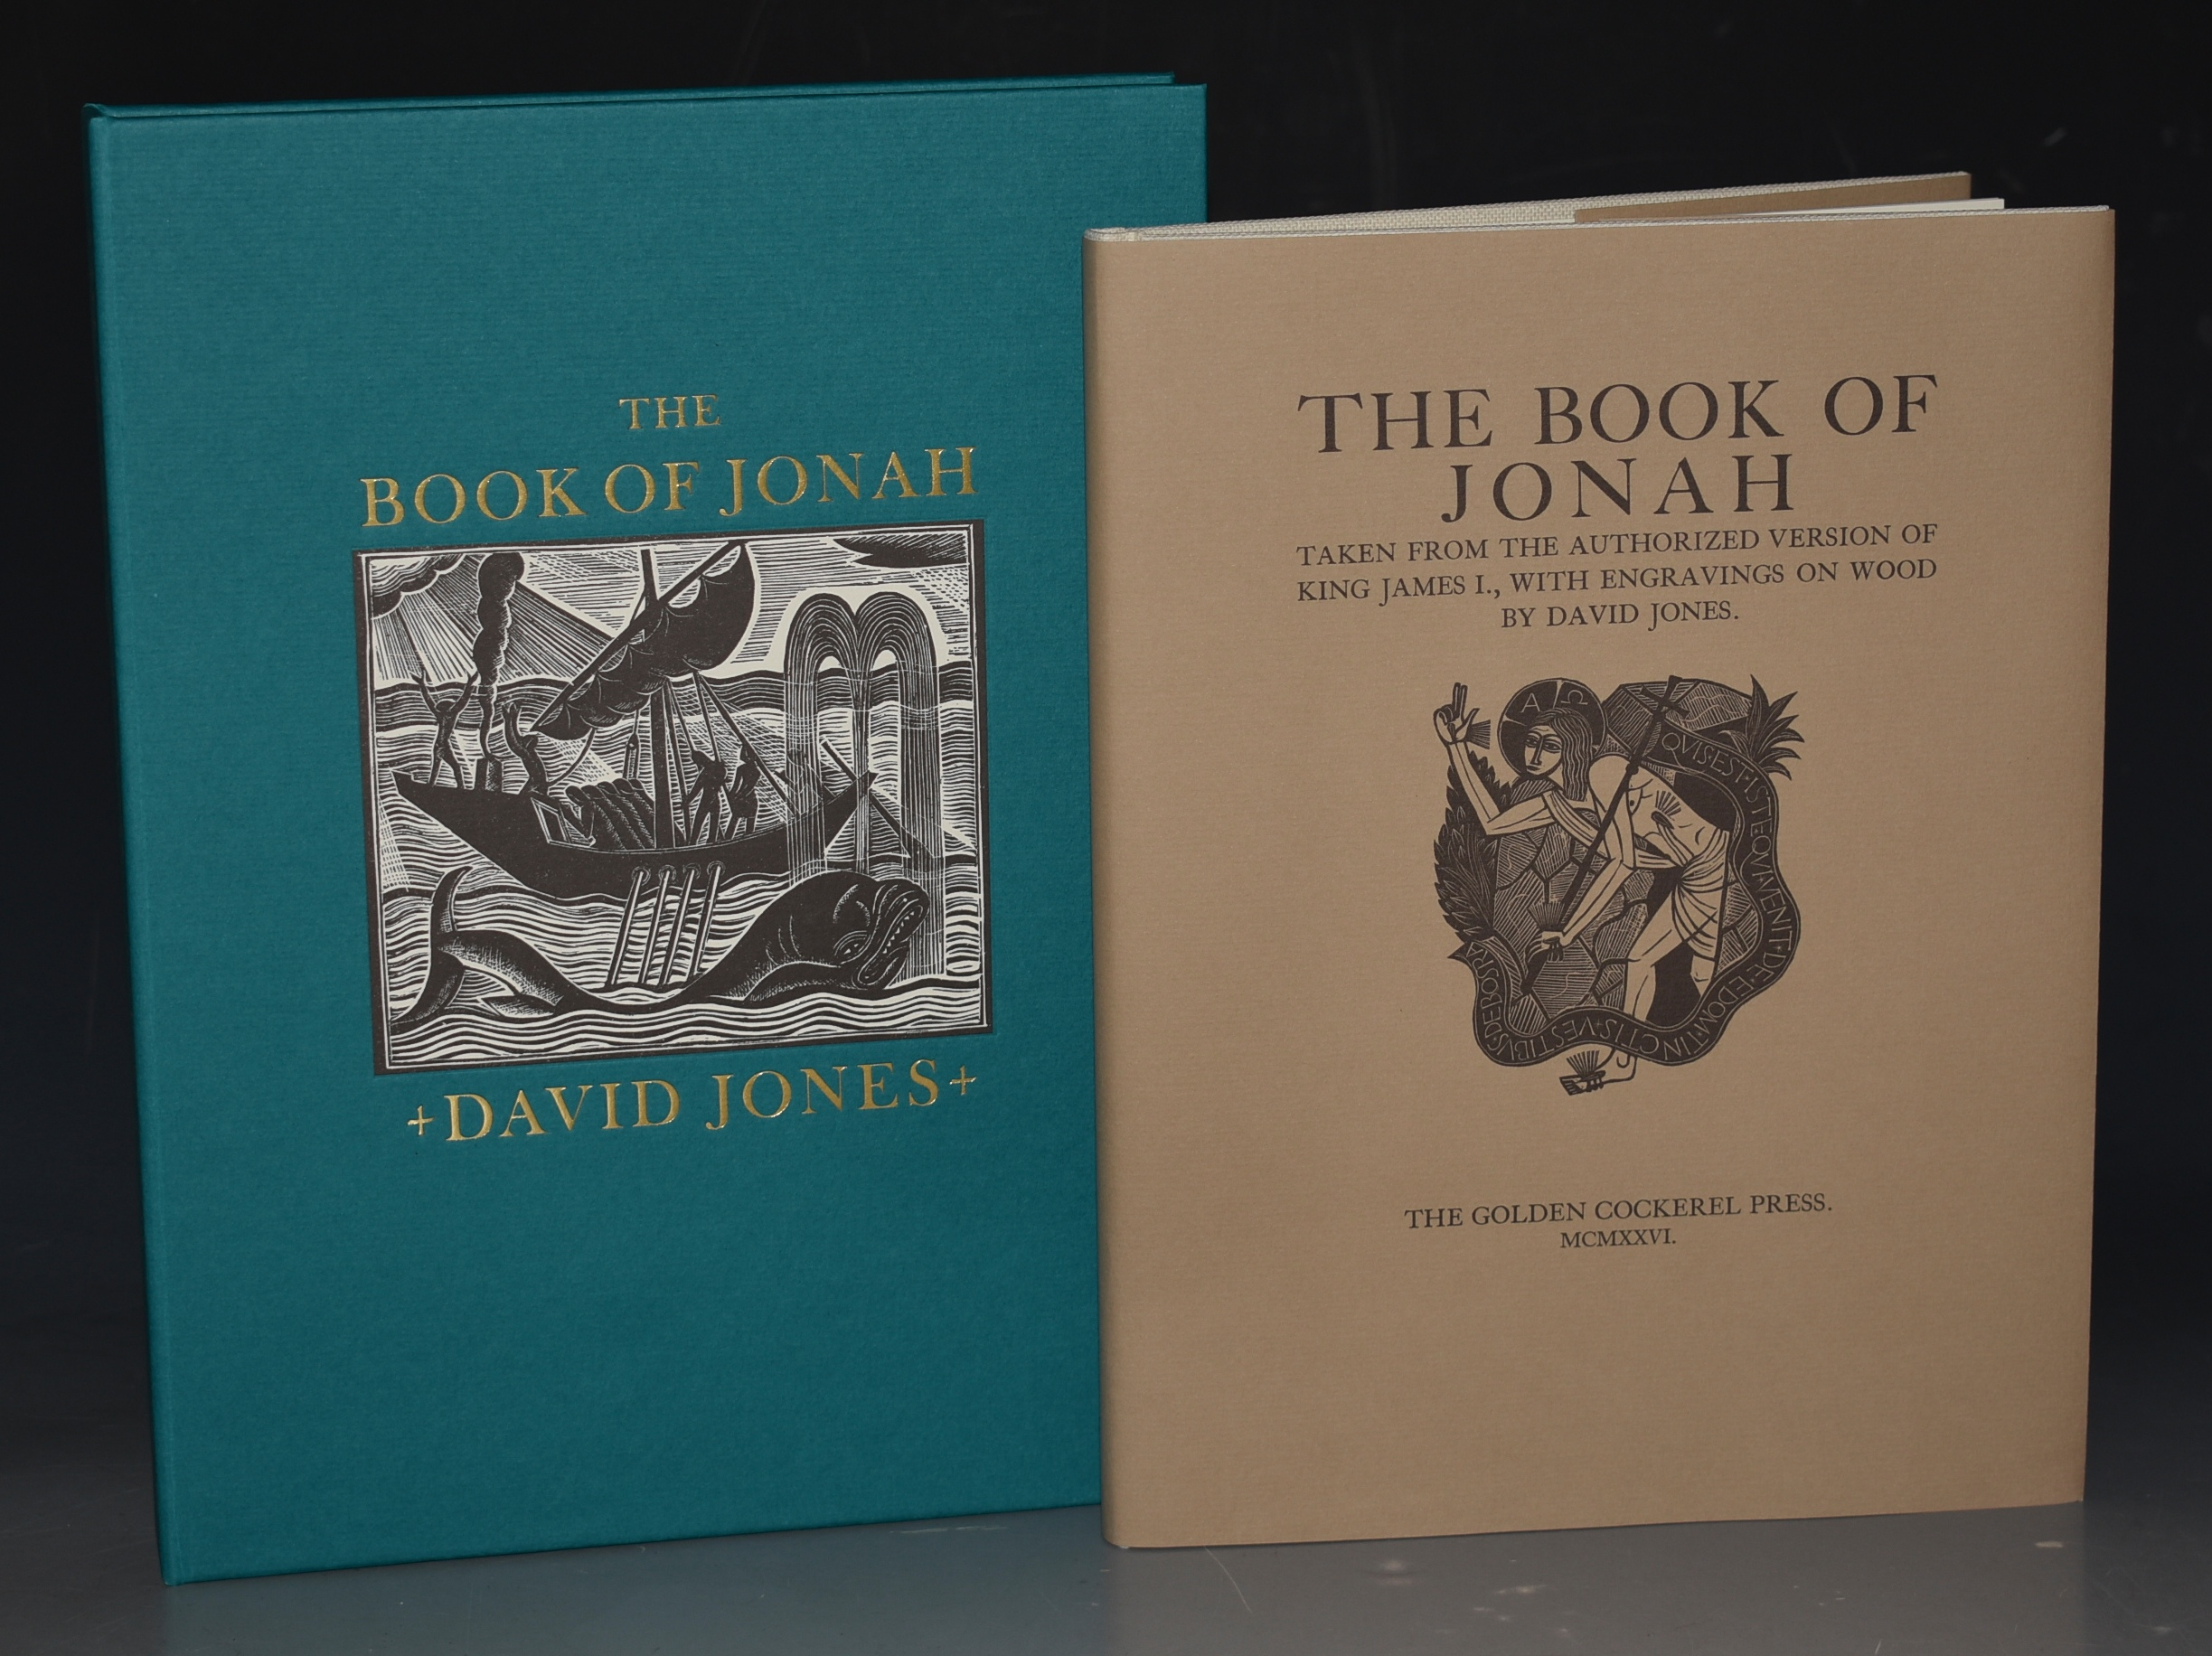 Image for The Book of Jonah Taken from the Authorized version of King James I., With Engravings on wood by David Jones. Limited Numbered Cased Edition. Facsimile of the 1926 Golden Cockerel Press Edition. With an Essay by Sebastian Carter.